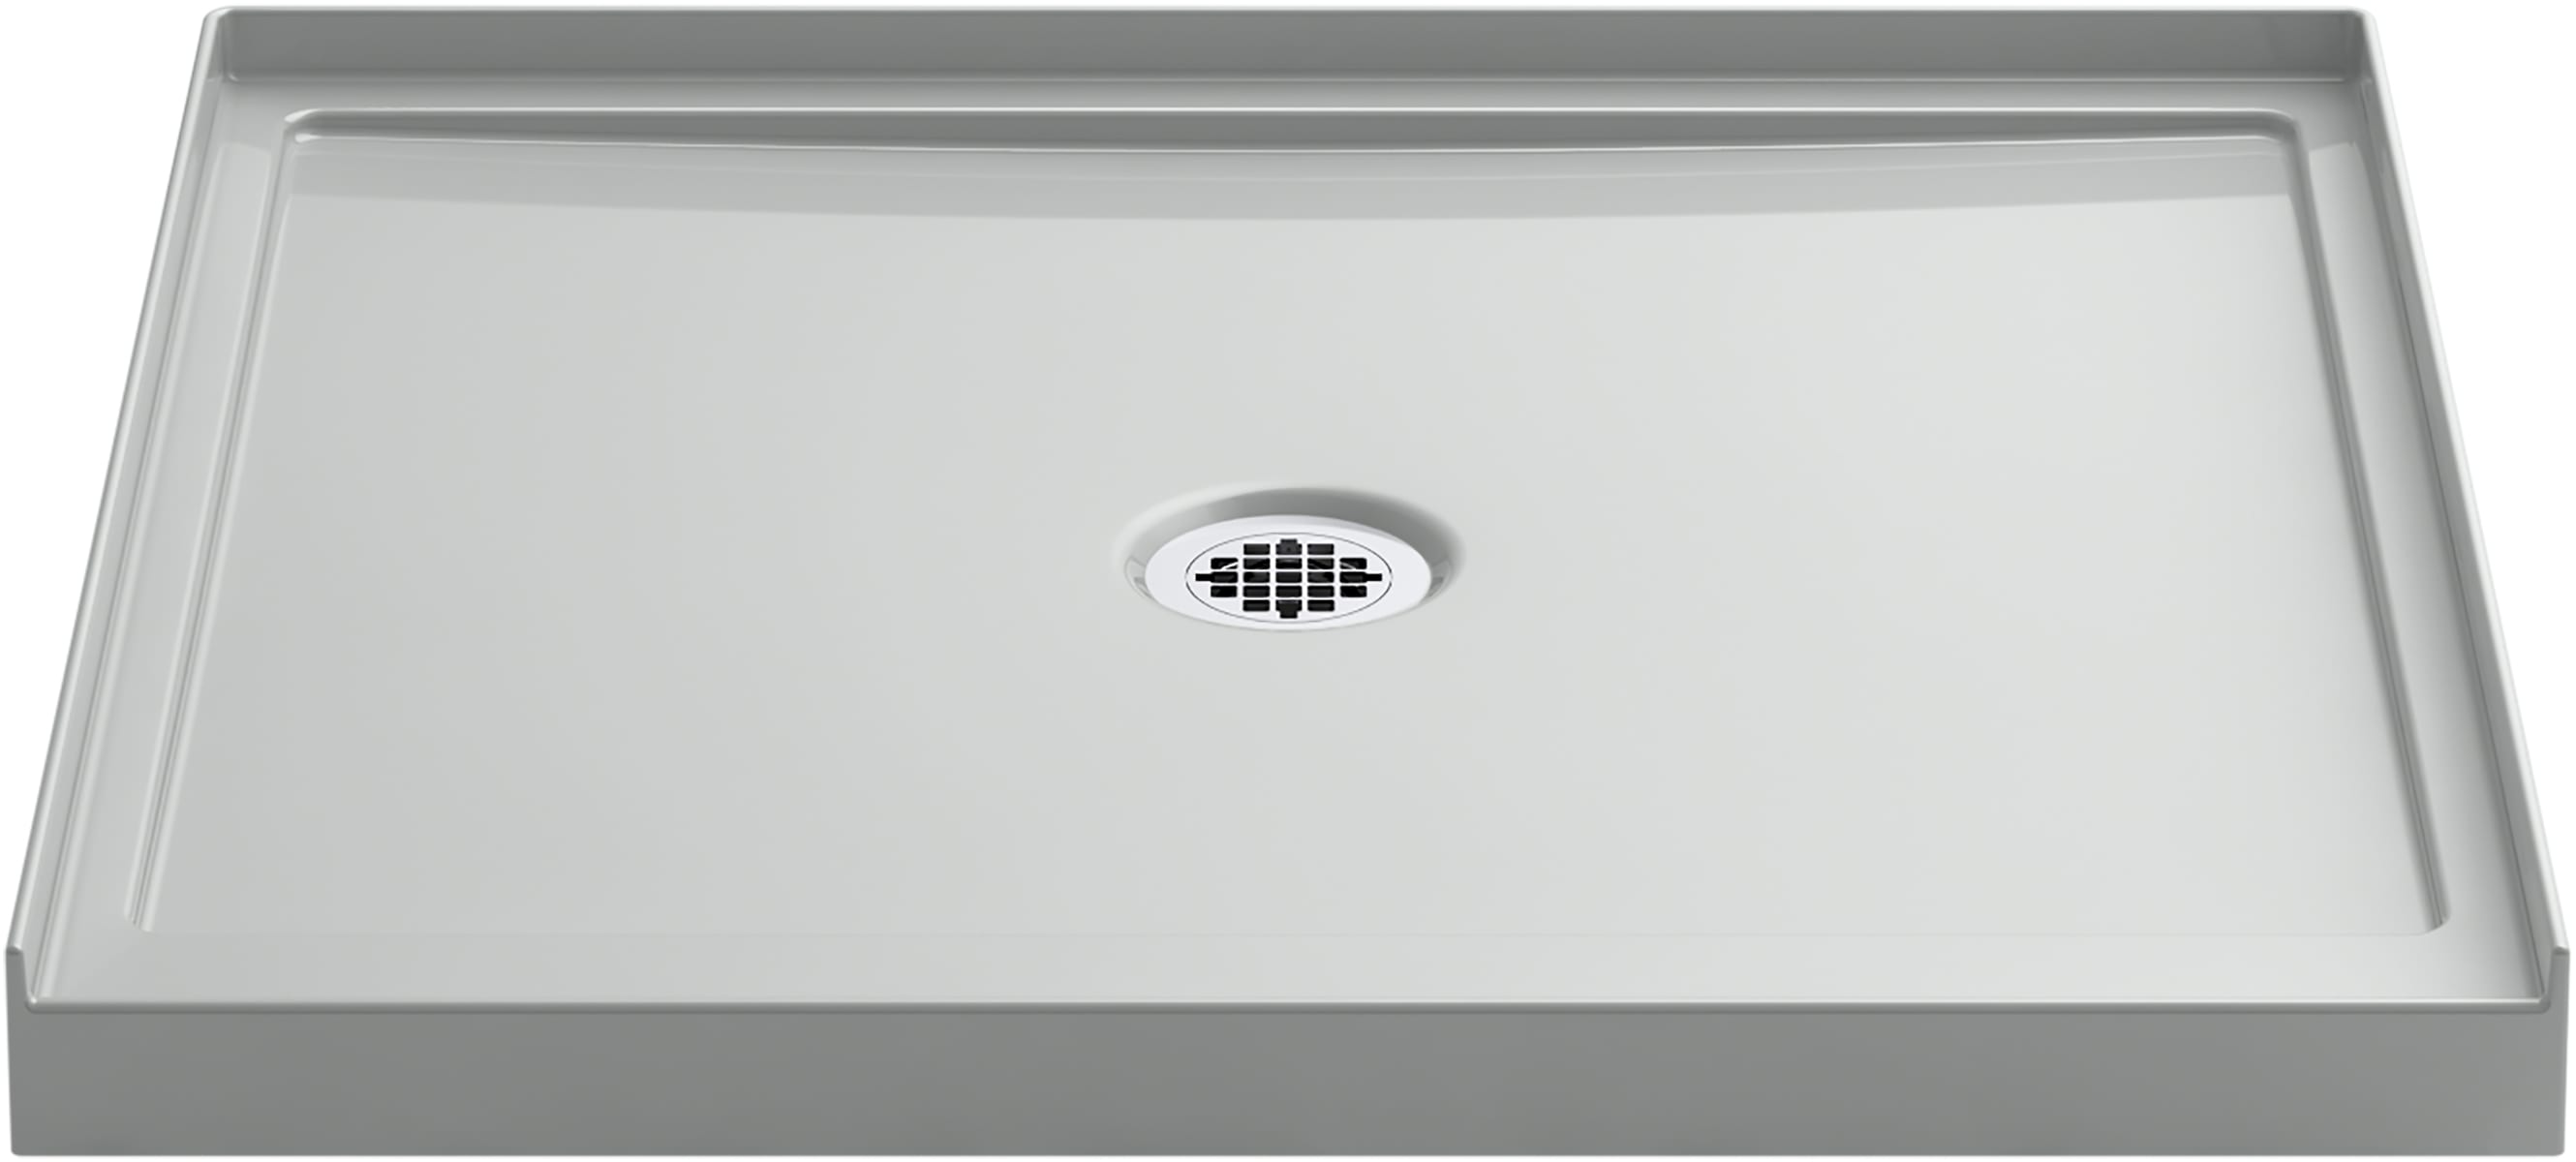 Kohler K 8644 47 Almond Rely 36 X 34 Square Shower Base